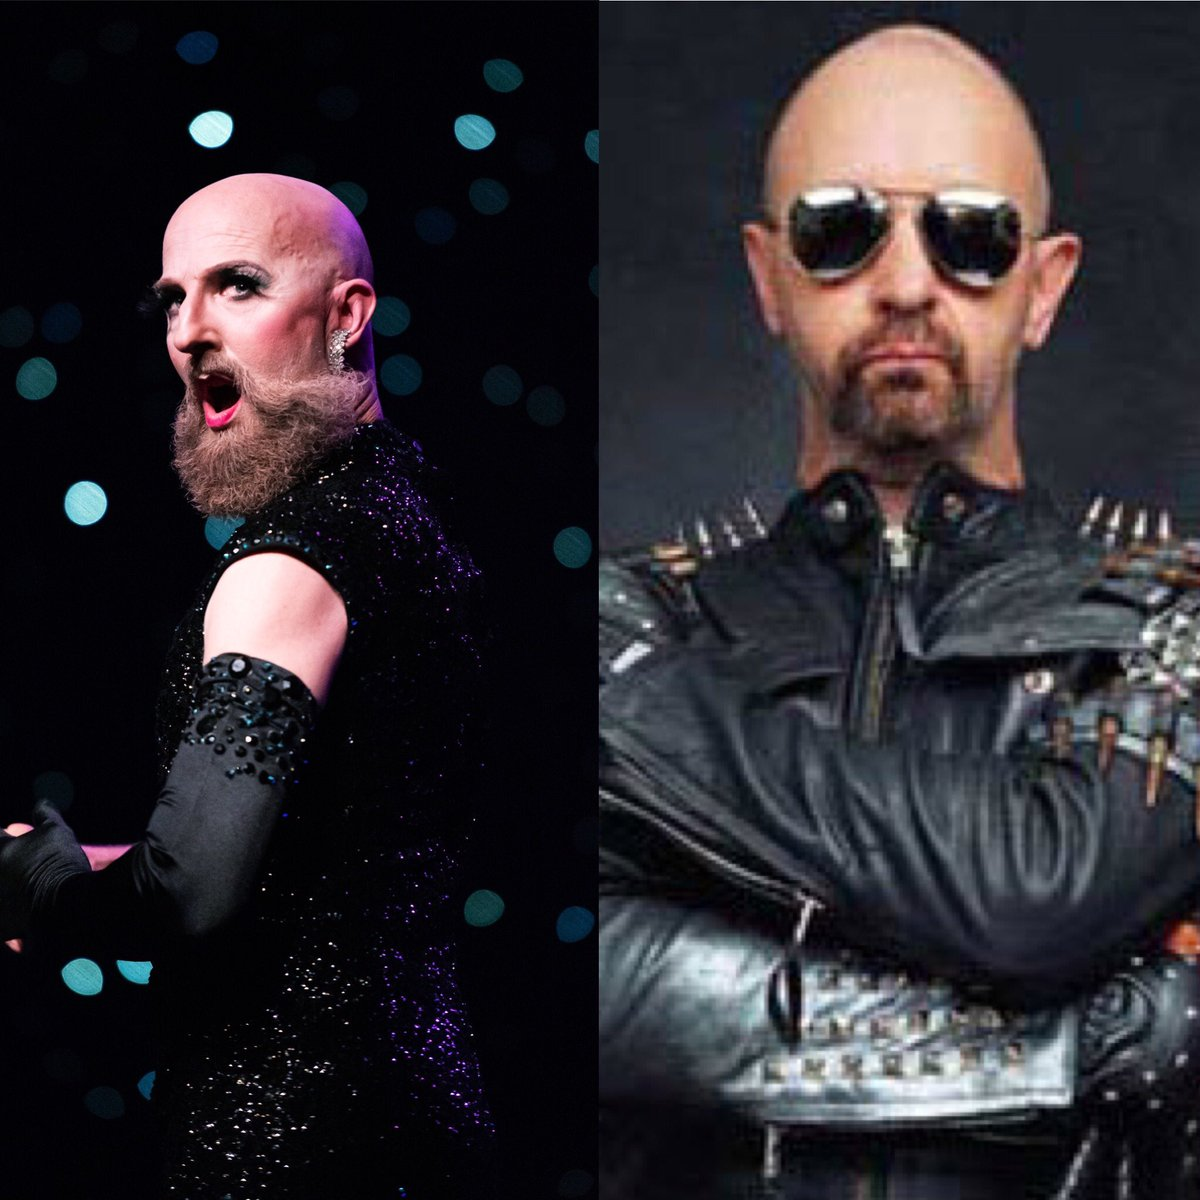 Twice I've been asked for an autograph. Happy to resemble hot homo rocker Rob Halford of Judas Priest. #celebritylookalike pic.twitter.com/sAefh3c8iu